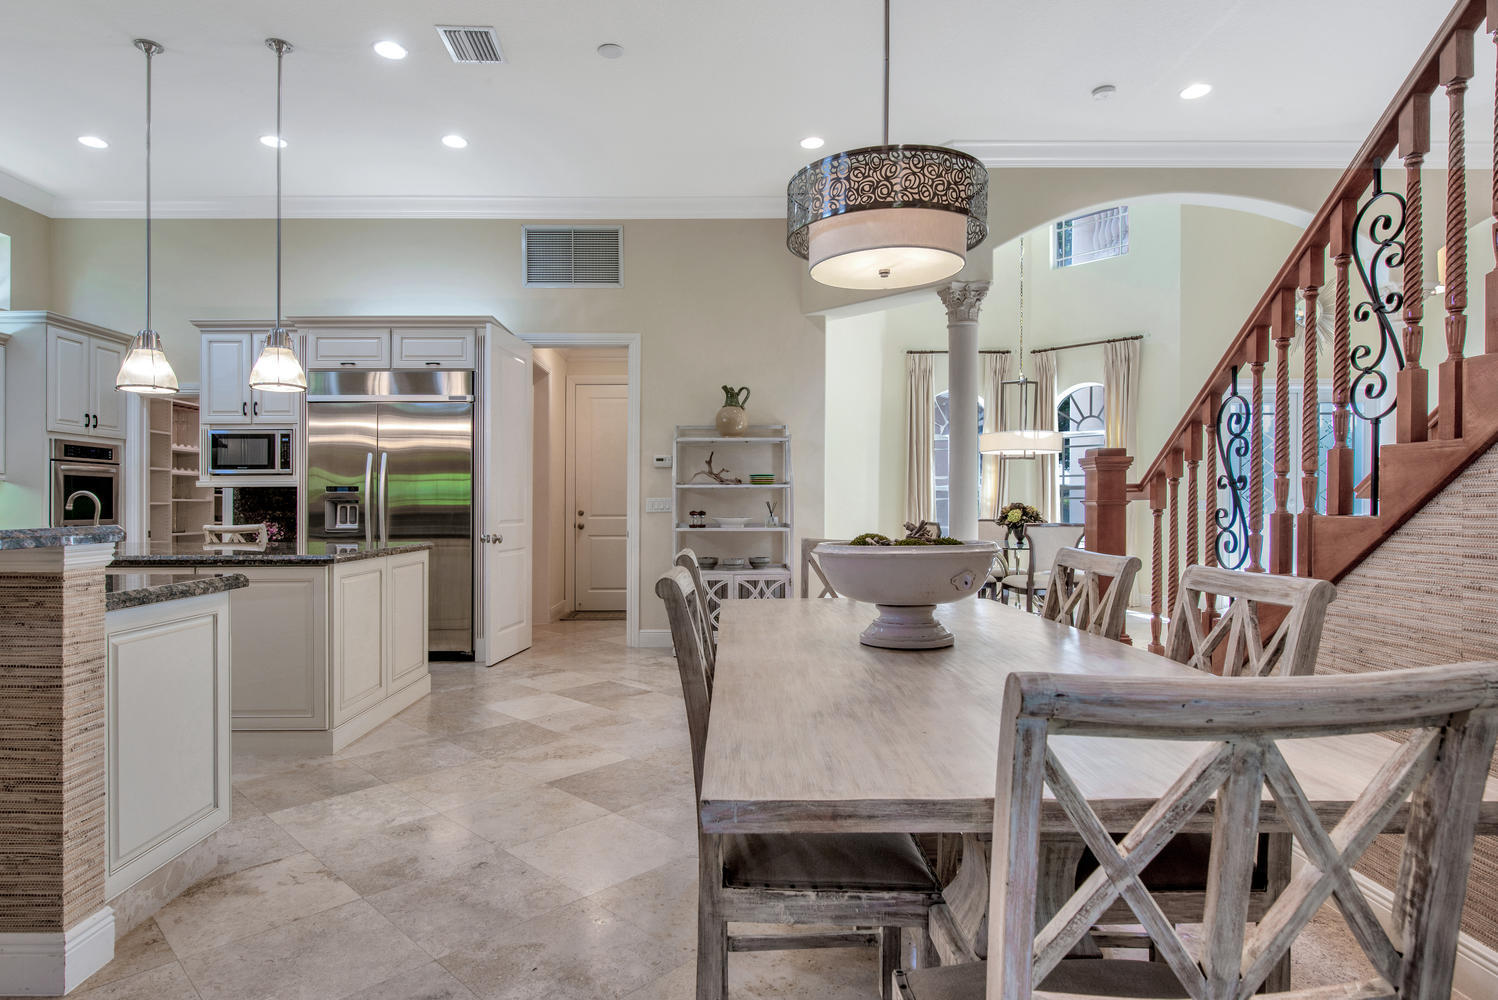 HERITAGE OAKS HOMES FOR SALE